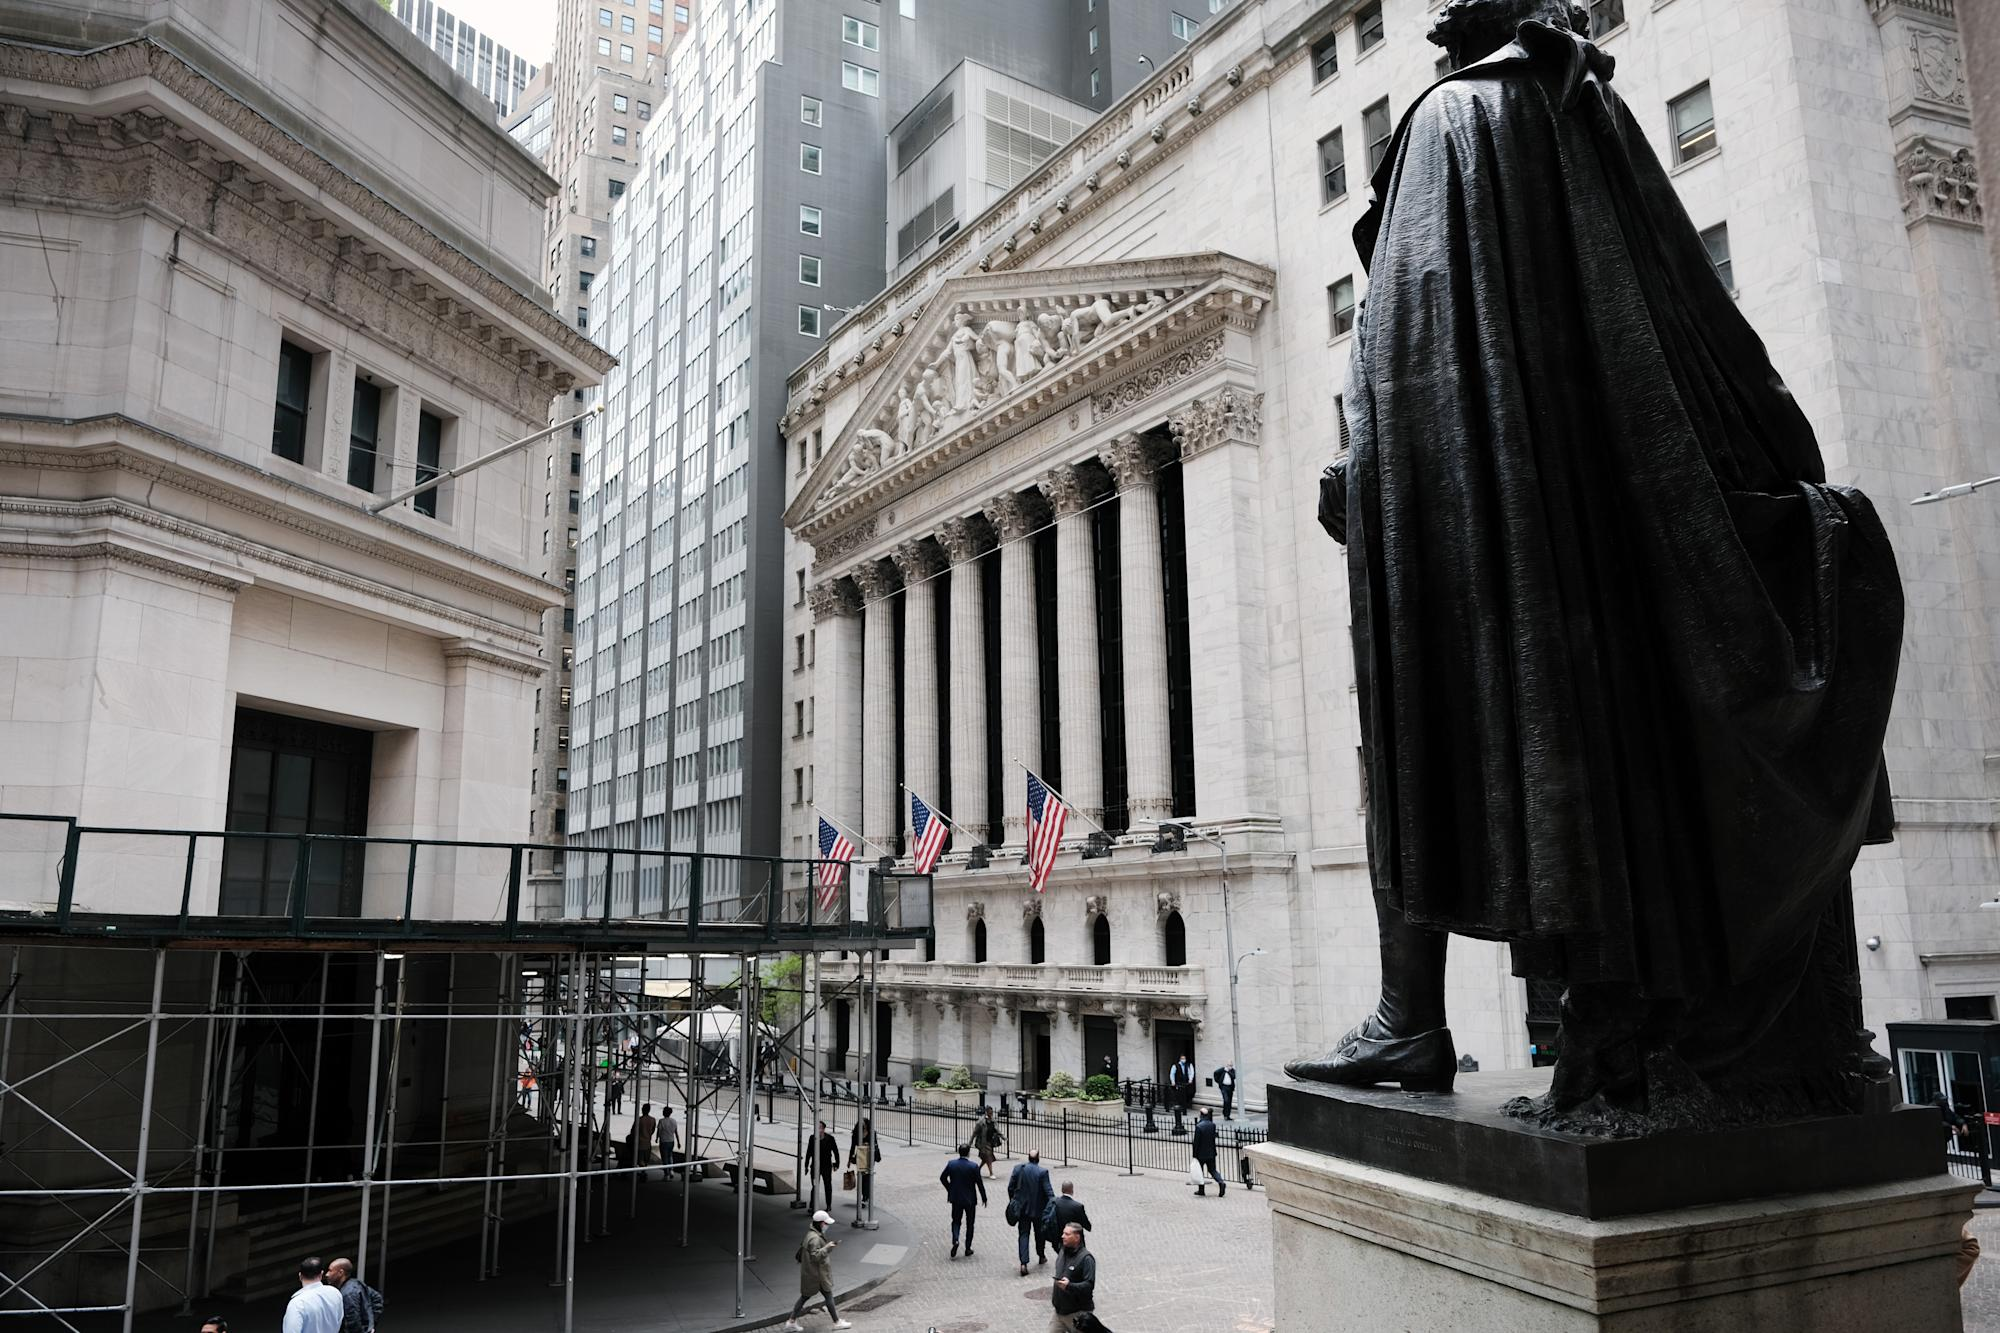 Stock market news live updates: Stocks gain as technology shares outperform, Bitcoin recovers some losses - Yahoo Financ